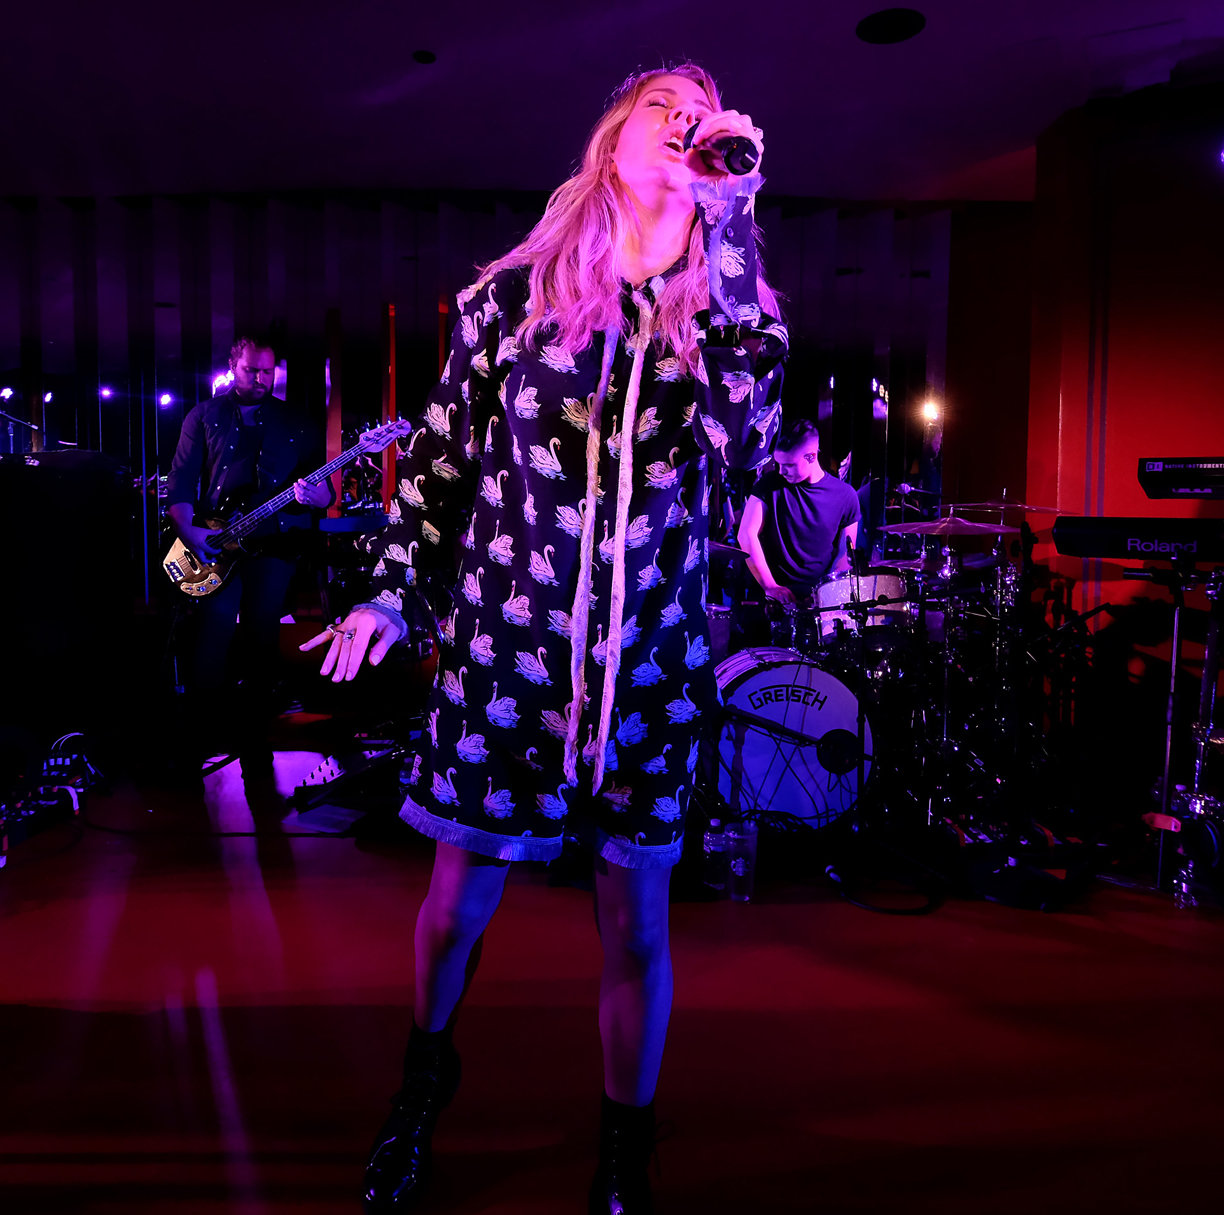 NEW YORK, NY - SEPTEMBER 07:  Ellie Goulding performs at the Cartier Fifth Avenue Grand Reopening Event at the Cartier Mansion on September 7, 2016 in New York City.  (Photo by Dimitrios Kambouris/Getty Images for Cartier)